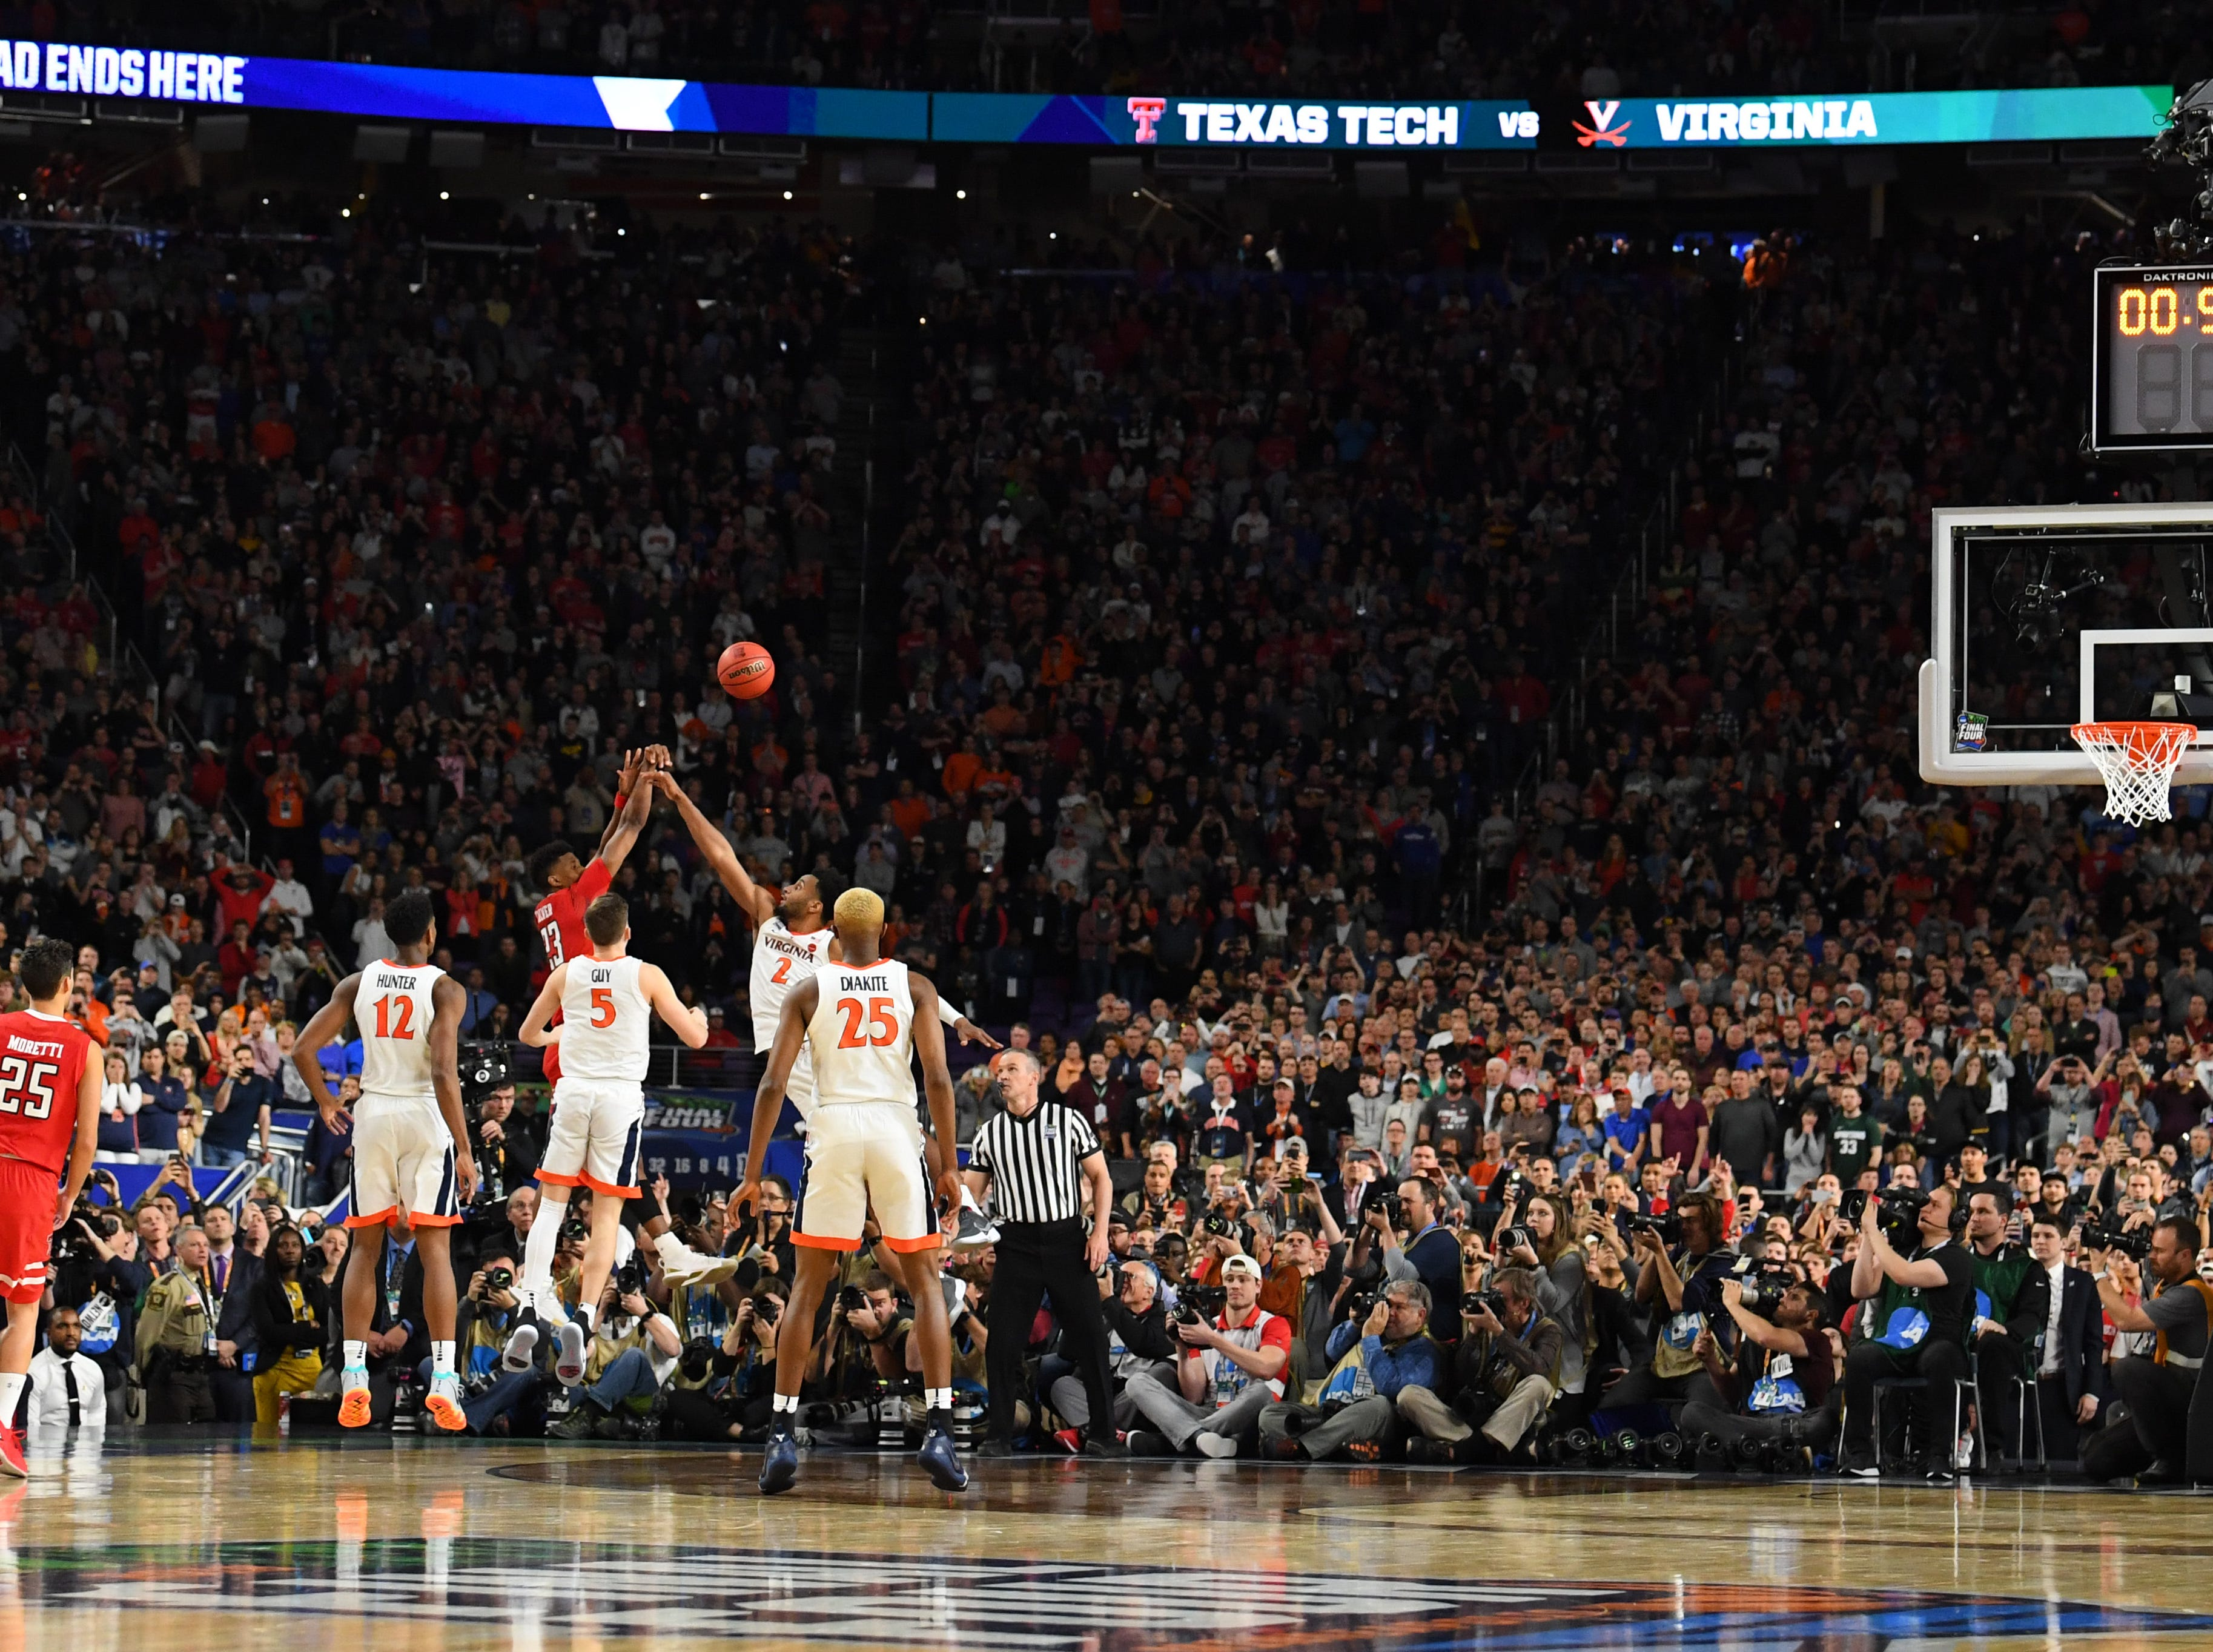 Apr 8, 2019; Minneapolis, MN, USA; Virginia Cavaliers guard Braxton Key (2) blocks the final shot in regulation by Texas Tech Red Raiders guard Jarrett Culver (23) in the championship game of the 2019 men's Final Four at US Bank Stadium. Mandatory Credit: Robert Deutsch-USA TODAY Sports